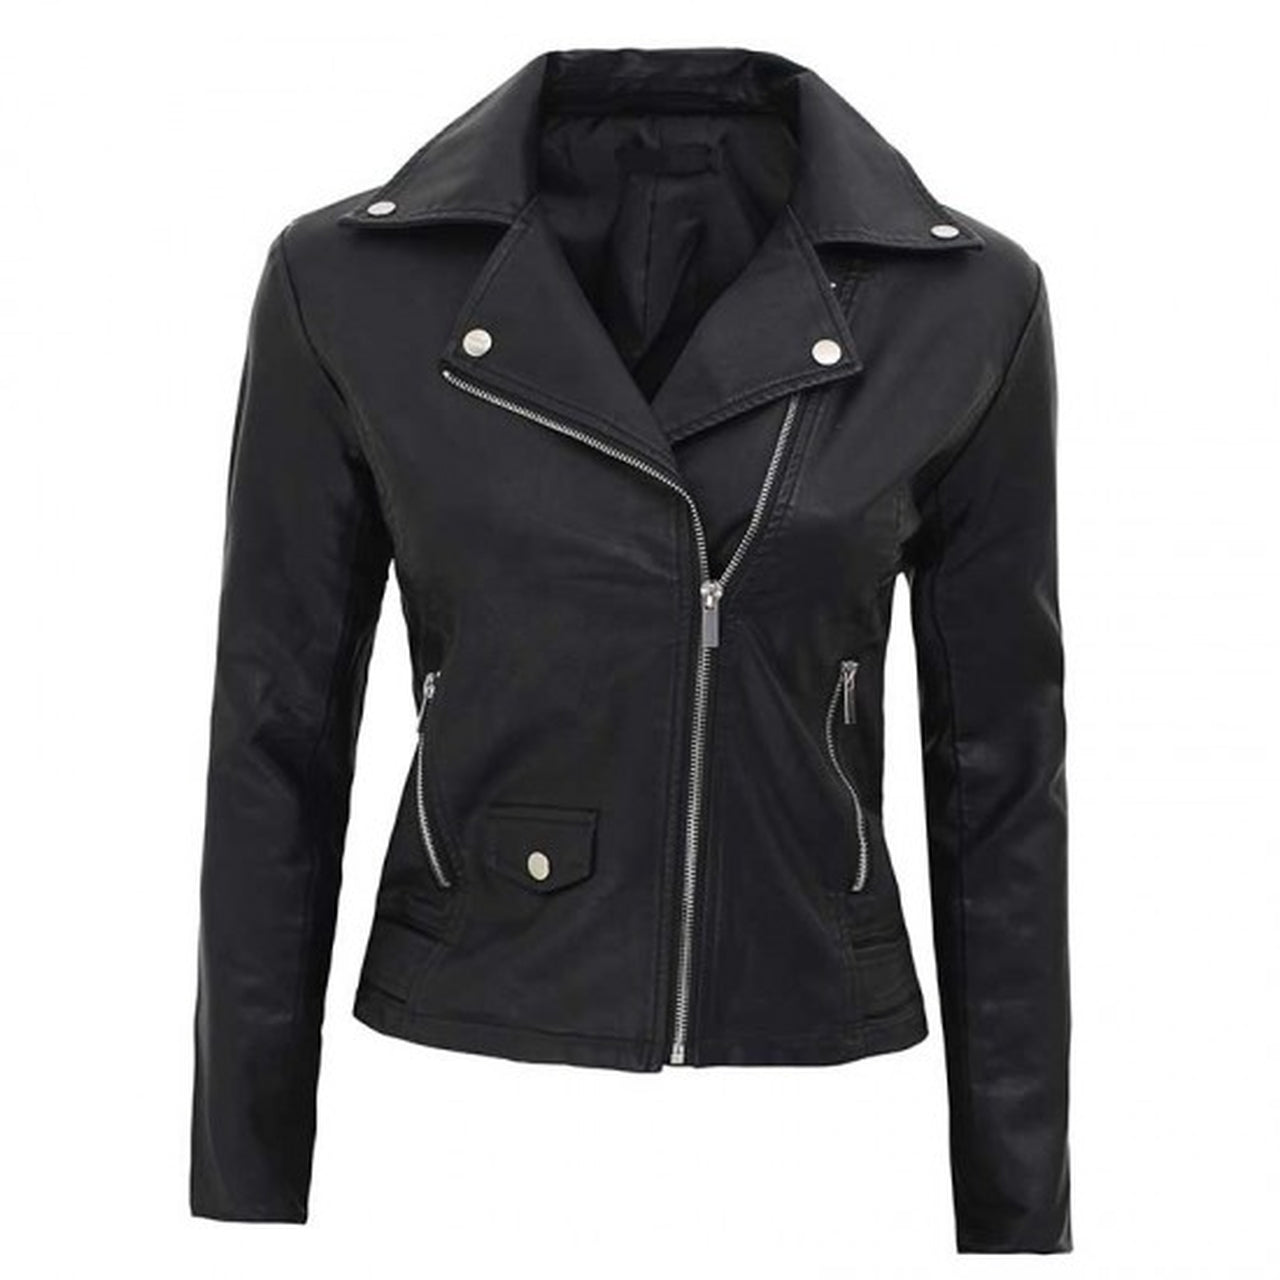 Lambskin Asymmetrical Leather Jacket Women - Leather Jacket